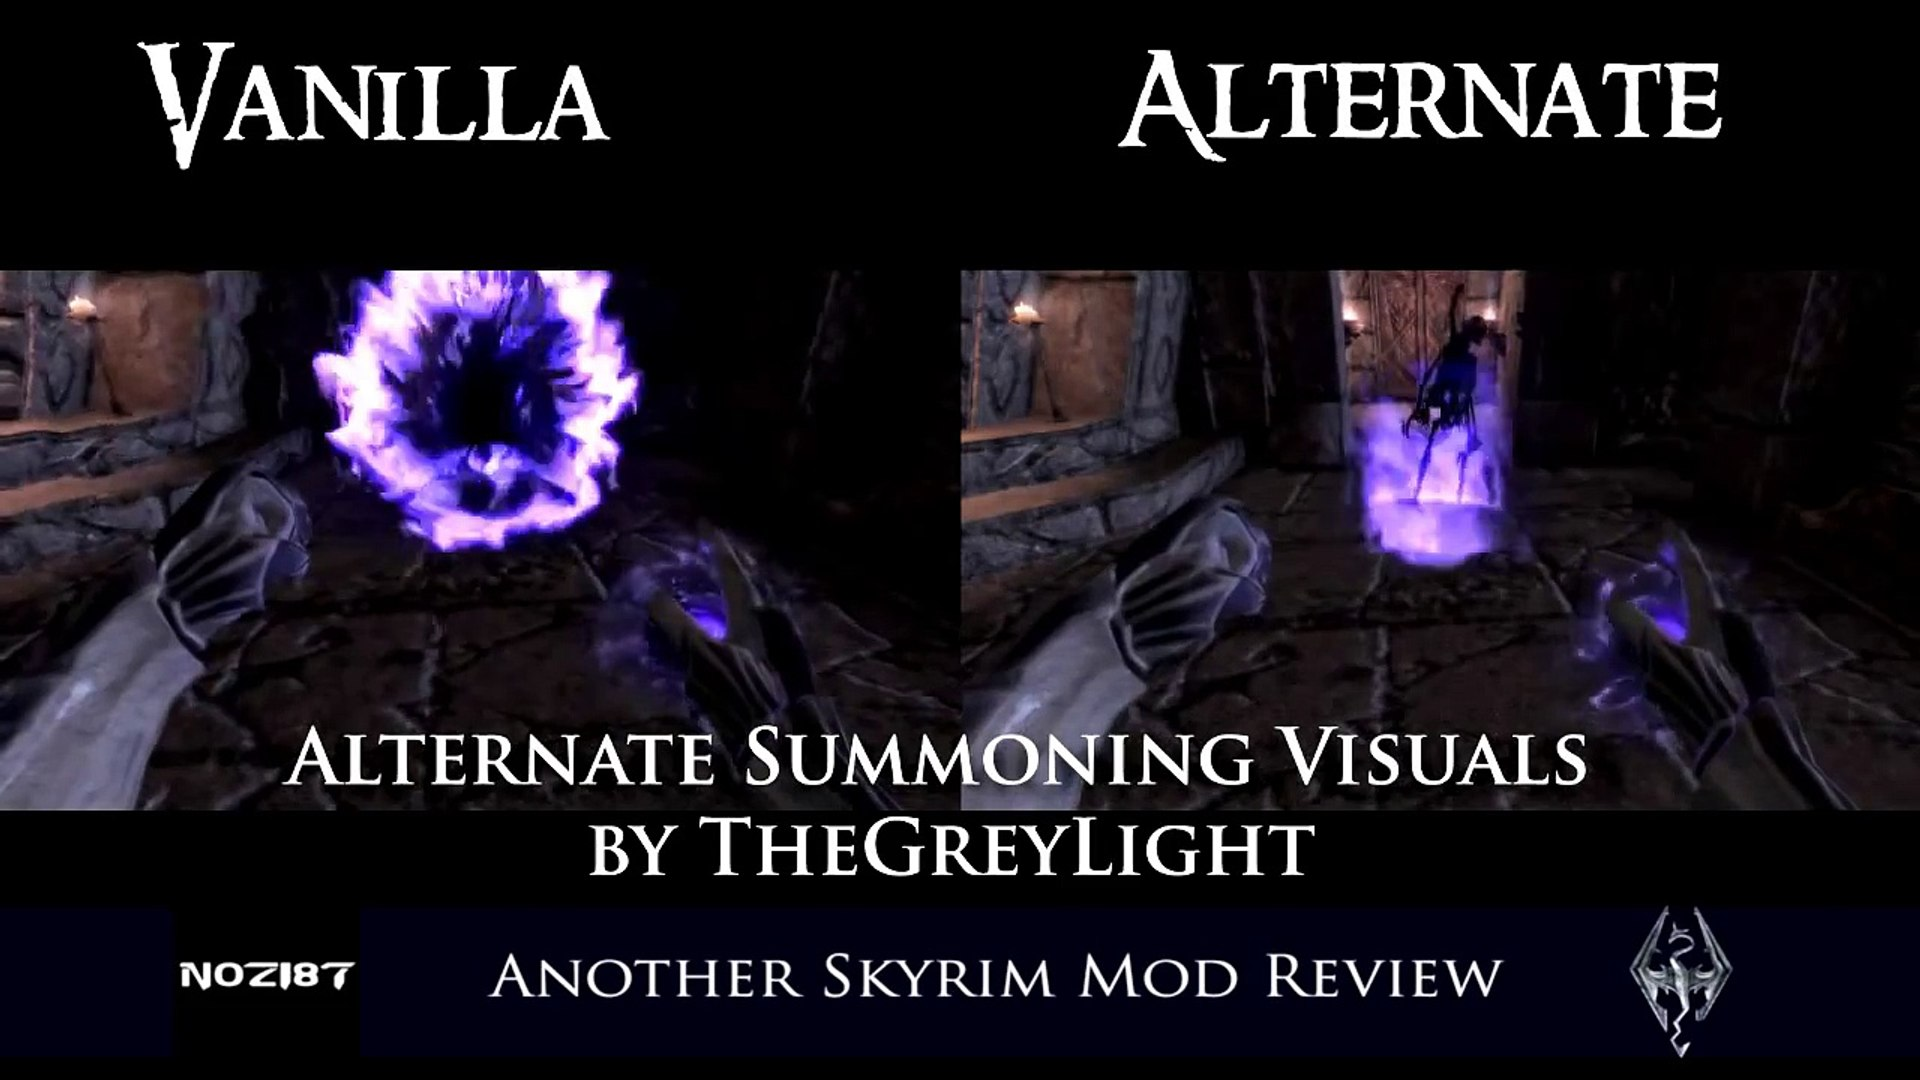 Another Skyrim Mod Review Alternate Summoning Visuals by TheGreyLight